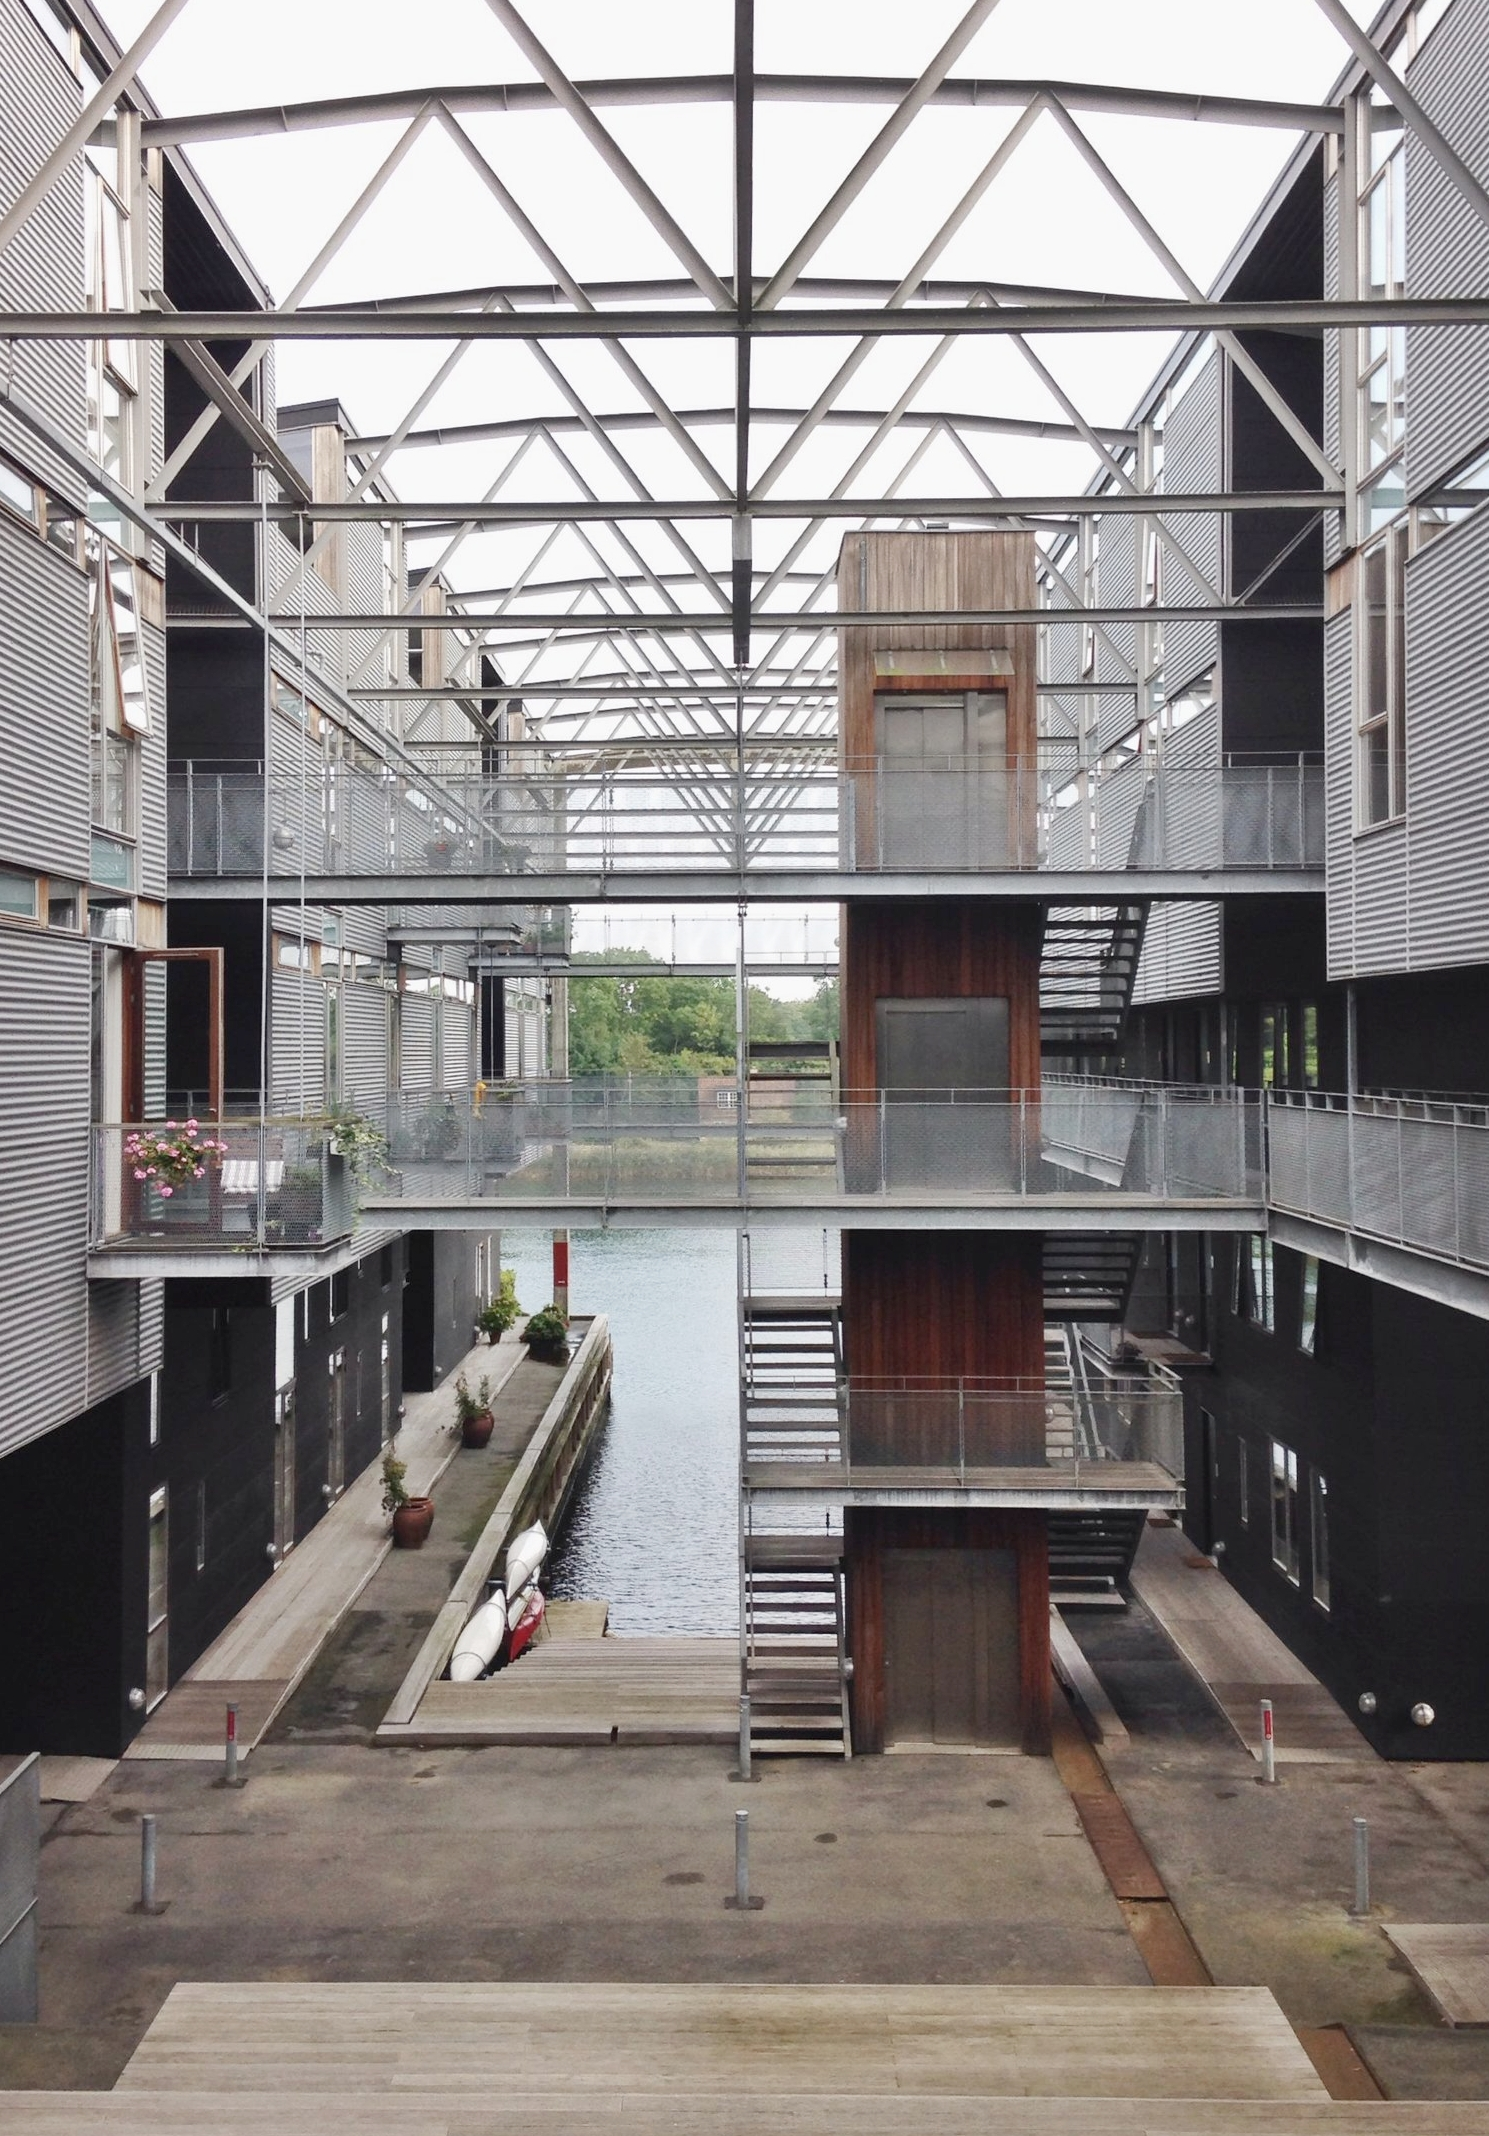 Torpedohallen courtyard, photo by author